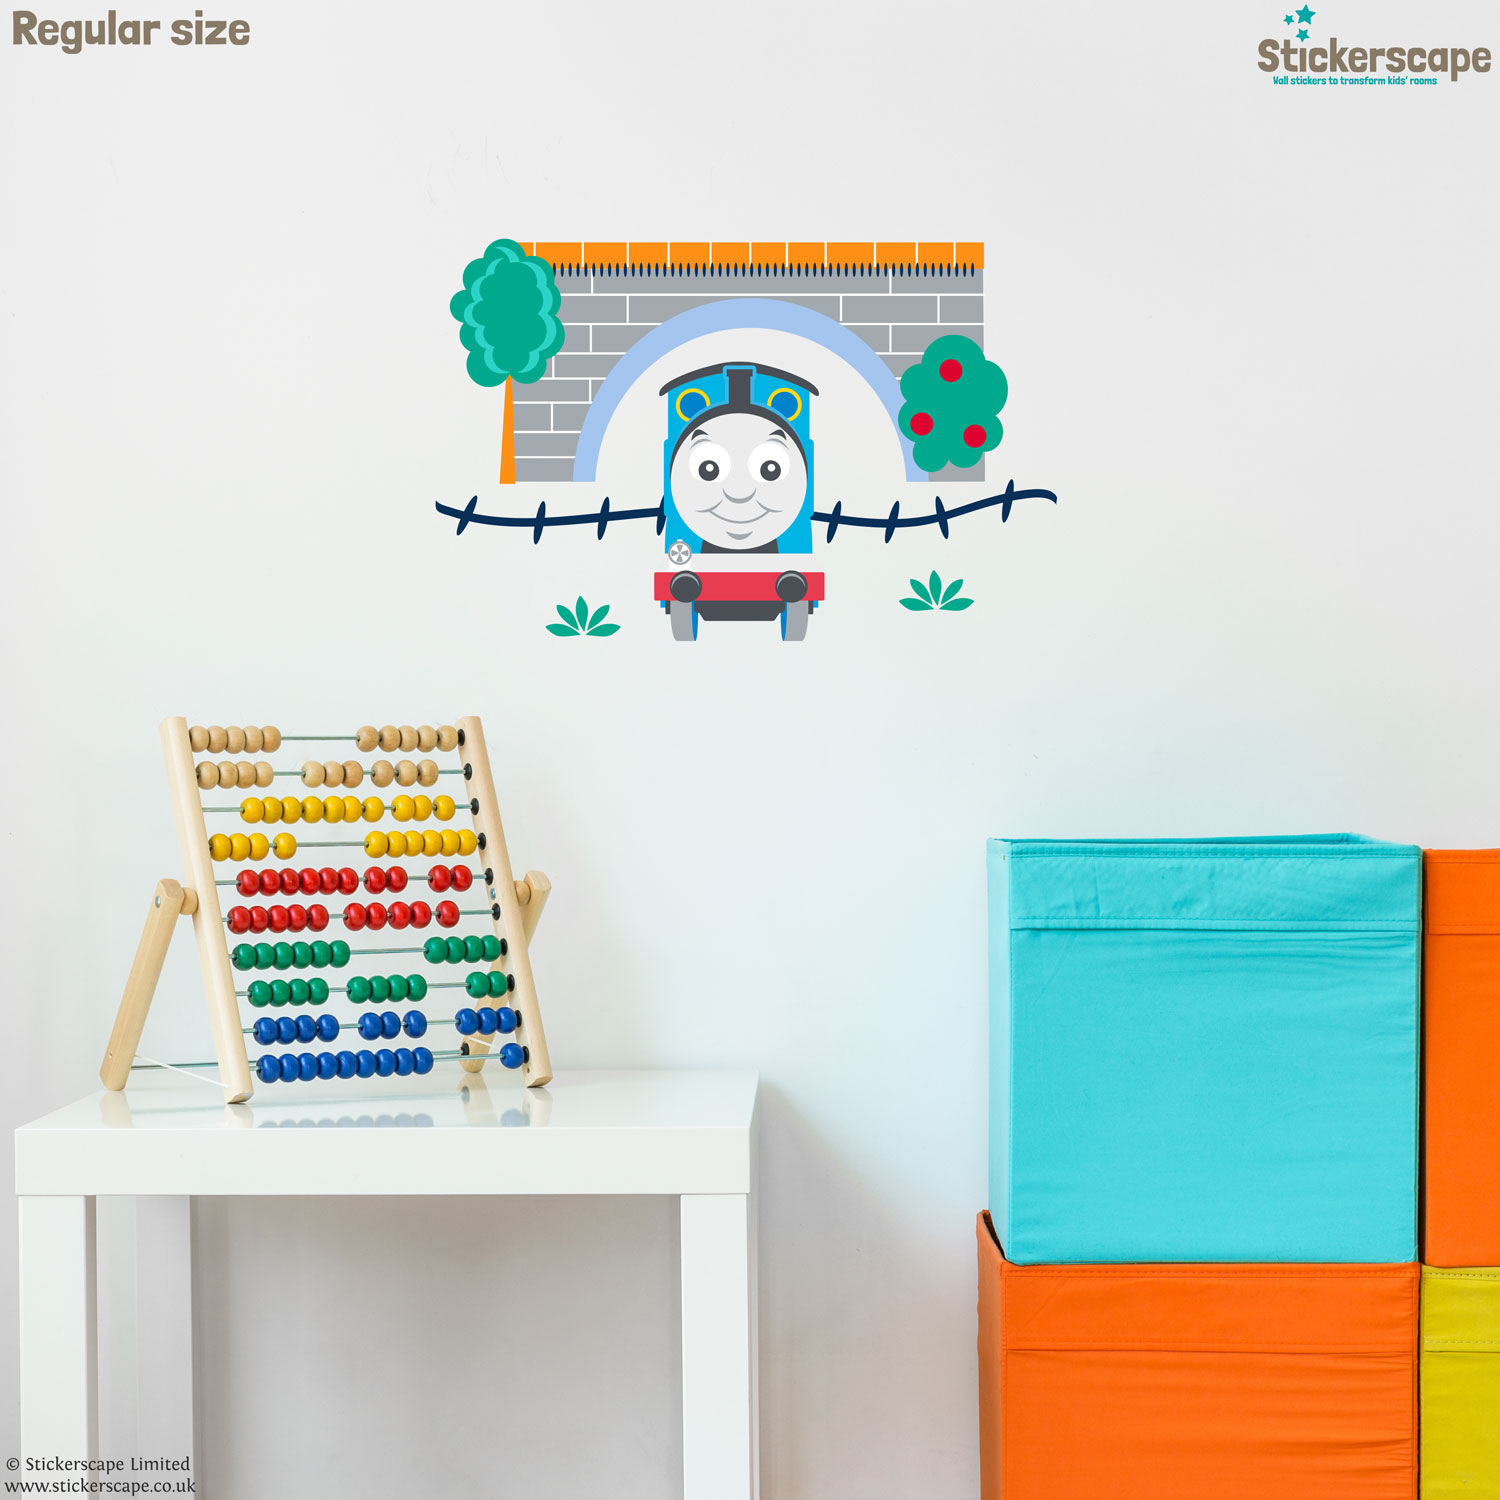 thomas amp friends tunnel wall sticker pack stickerscape uk thomas amp friends tunnel wall sticker pack stickerscape uk